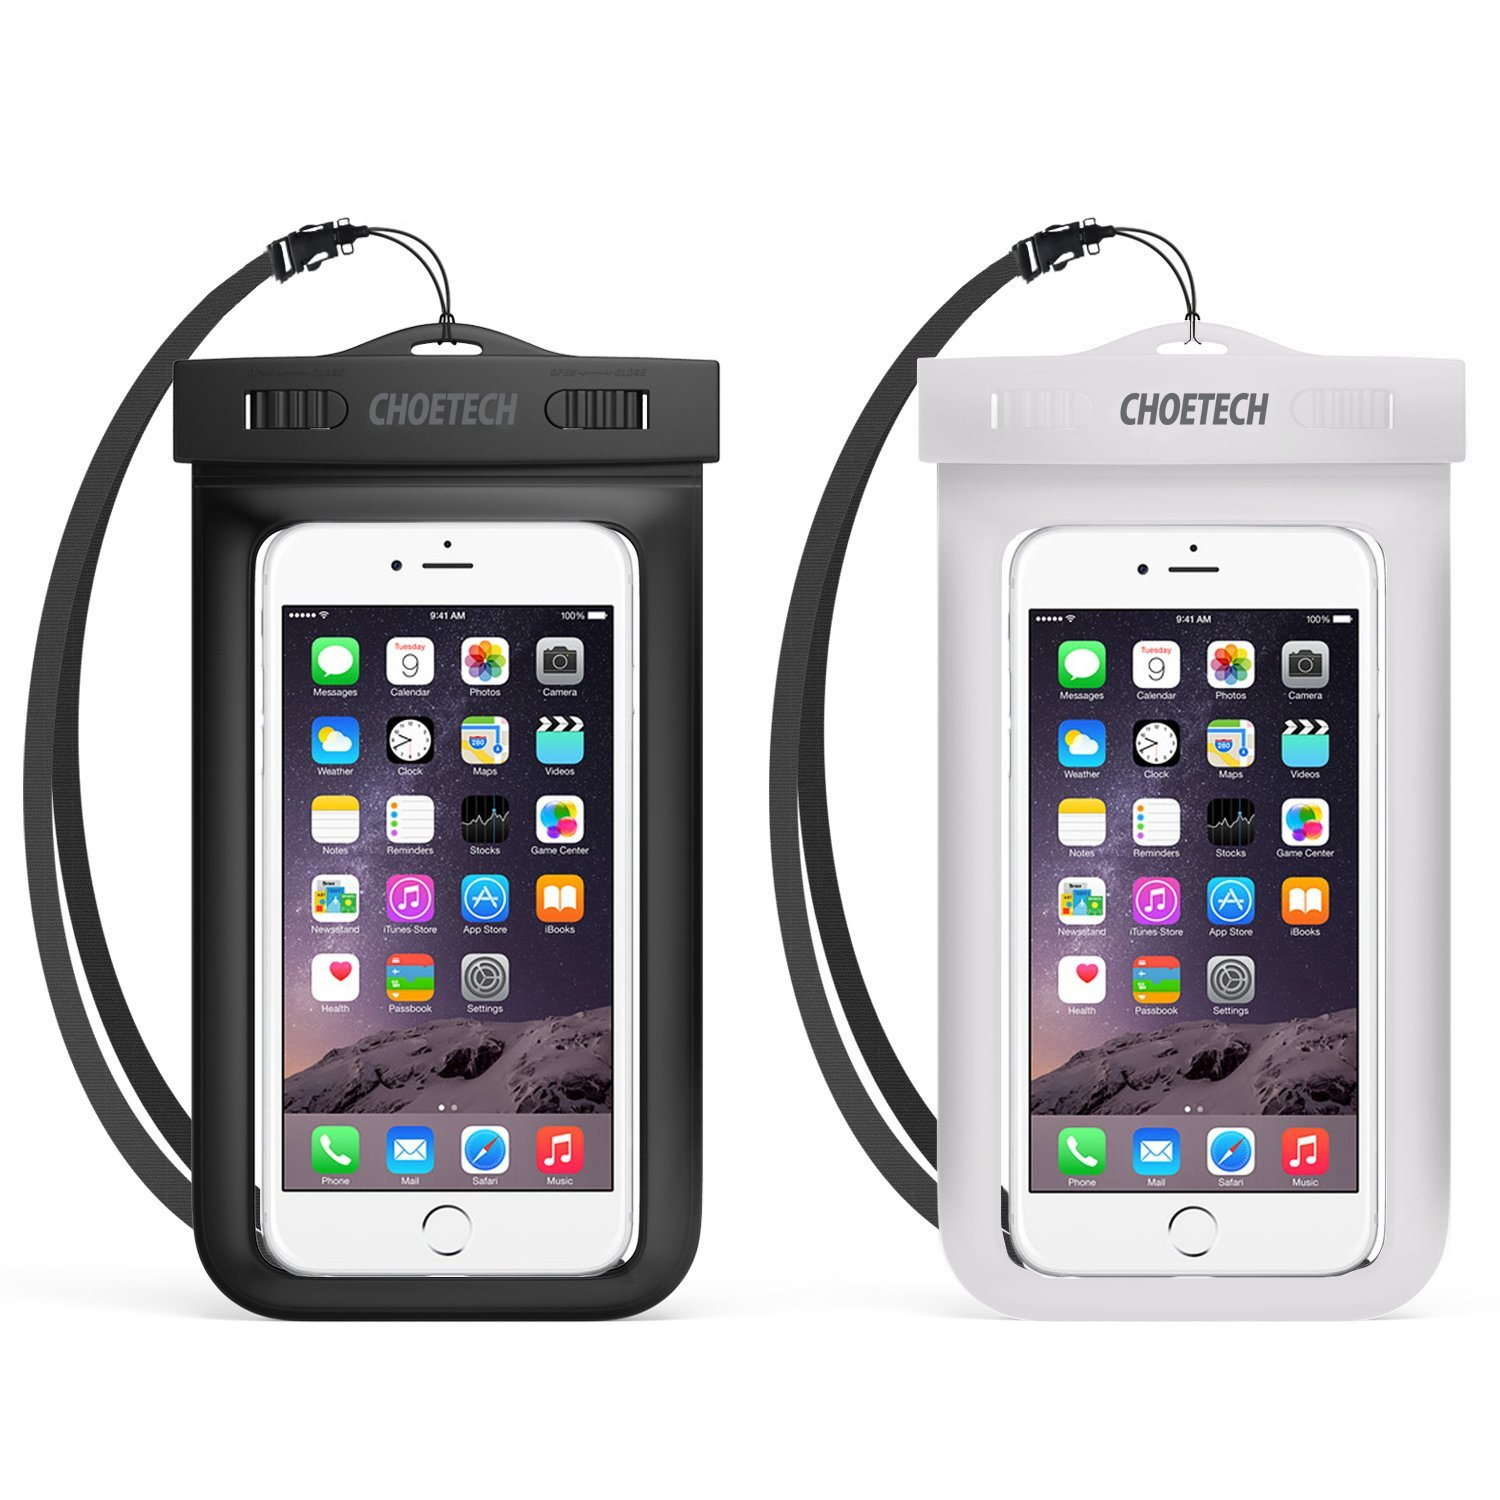 Universal Waterproof Case, CHOE 2Pack Clear Transparent Cellphone Waterproof, Dustproof Dry Bag With Neck Strap for iphone 7, 7 Plus, 6S, 6S Plus, and All Devices Up to 6 Inches